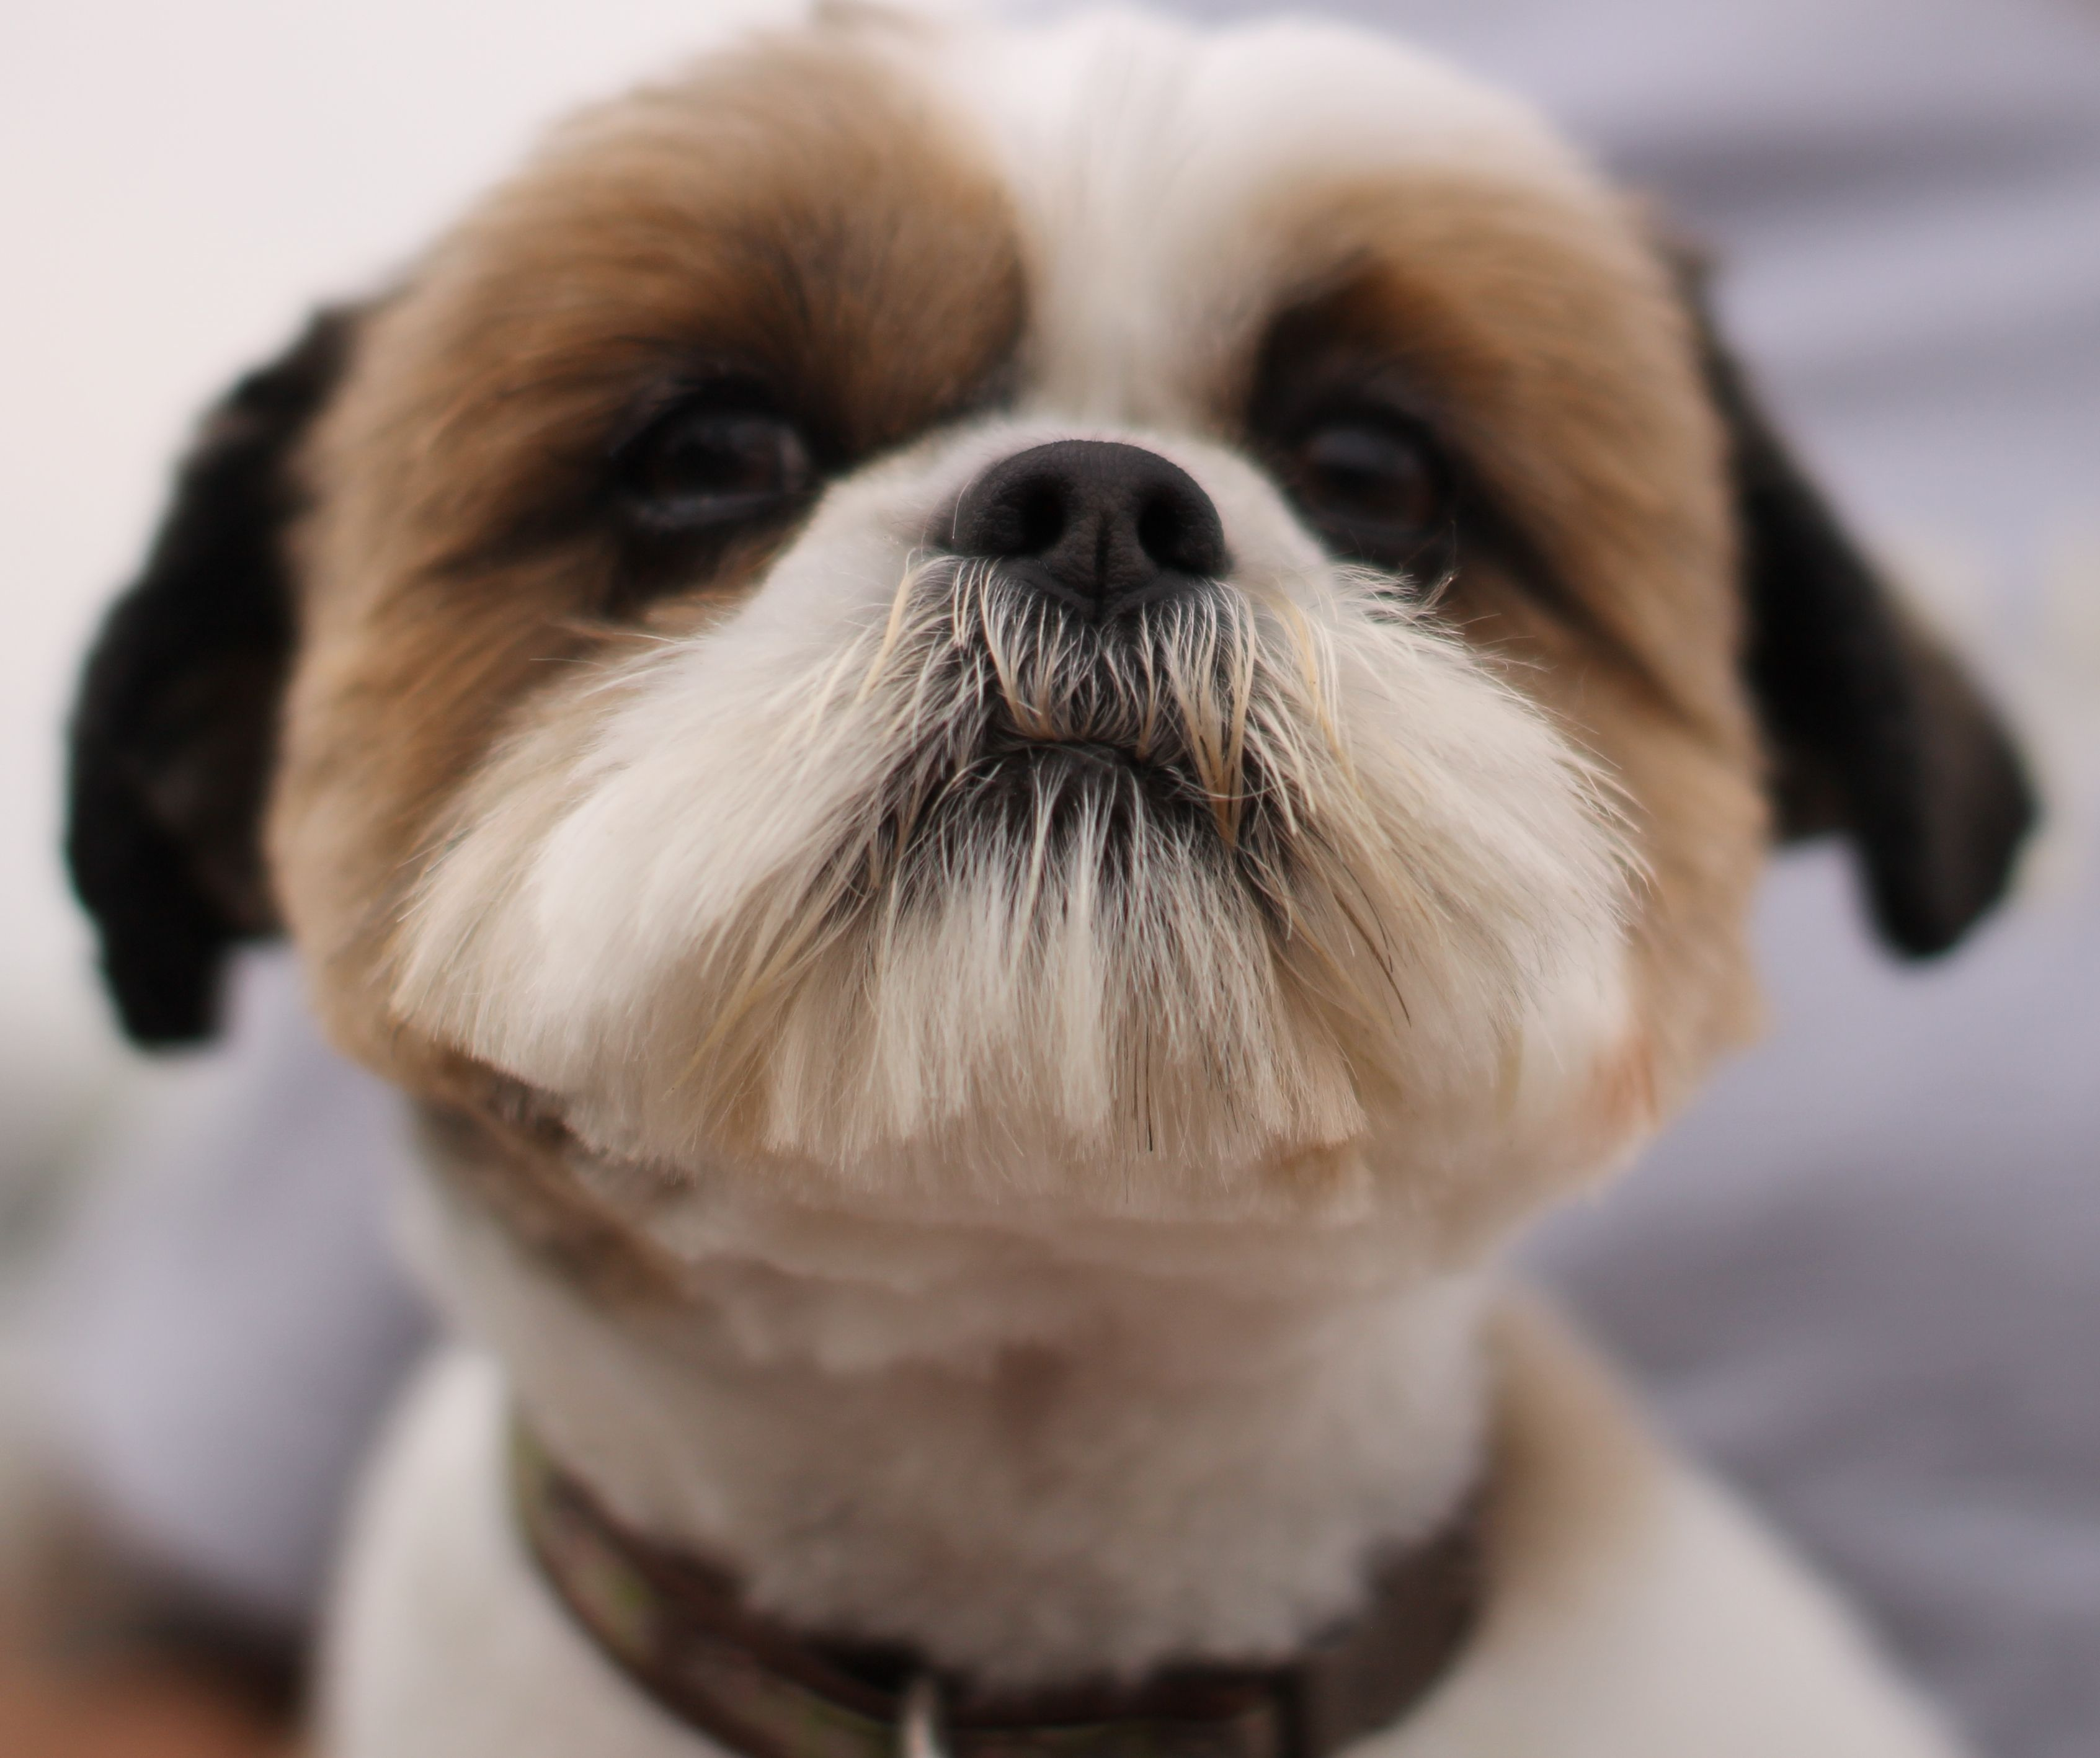 KISS ME! Therapy dogs, Shih tzu puppy